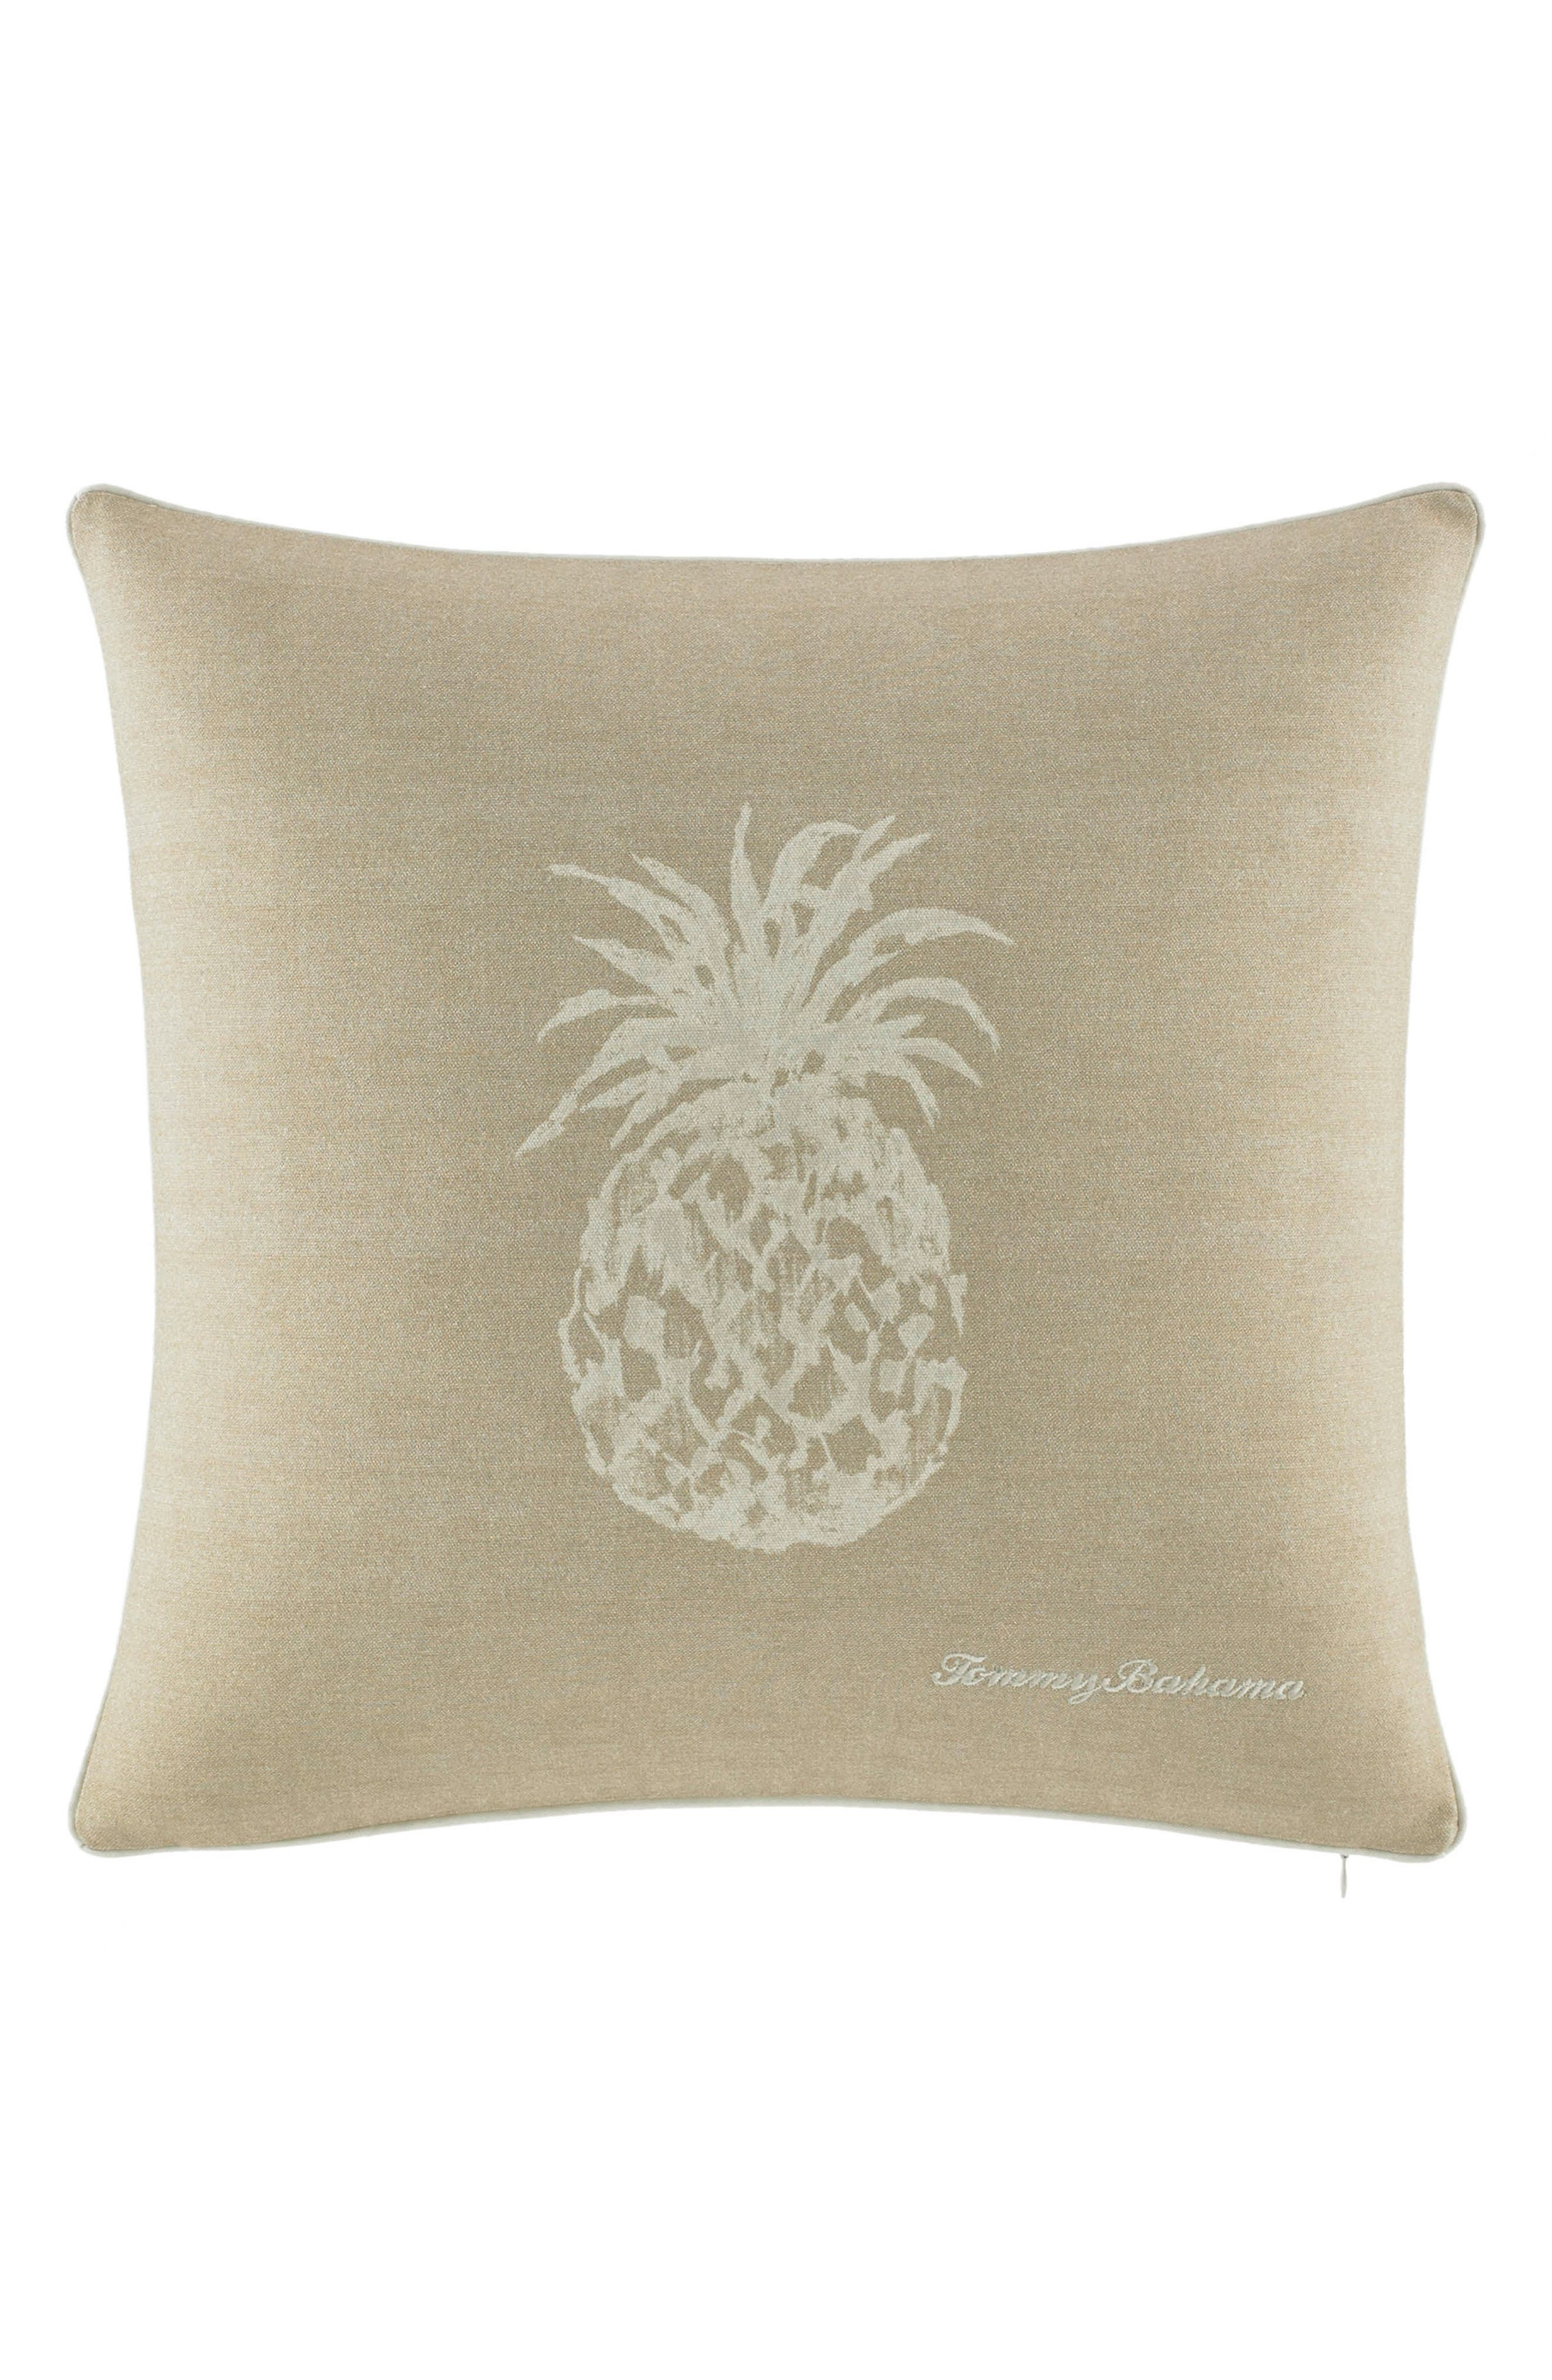 Main Image - Tommy Bahama Pineapple Canvas Accent Pillow